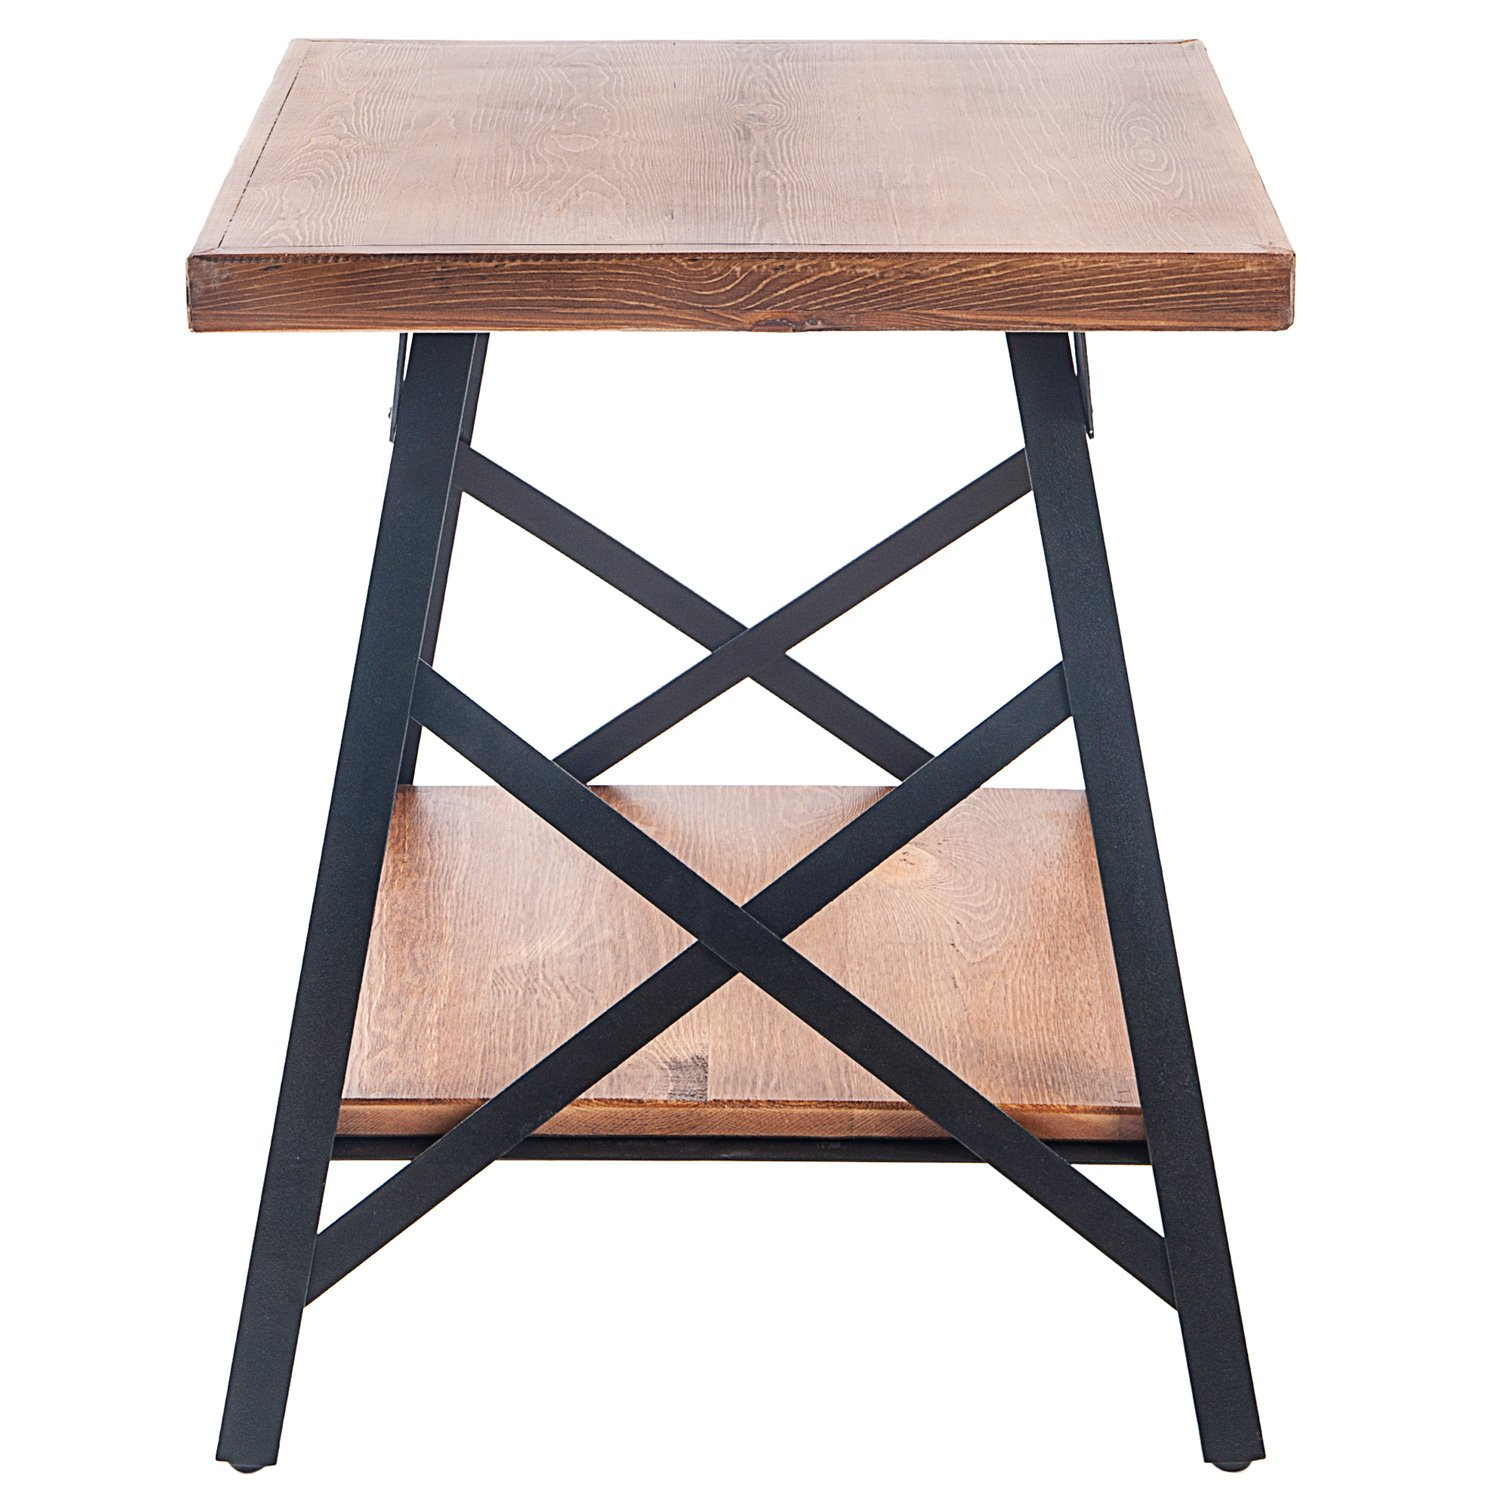 Harper&Bright Designs End Table with Metal Legs, Living Room Set, Solid Wood, Rustic (Brown) by Harper&Bright Designs (Image #3)